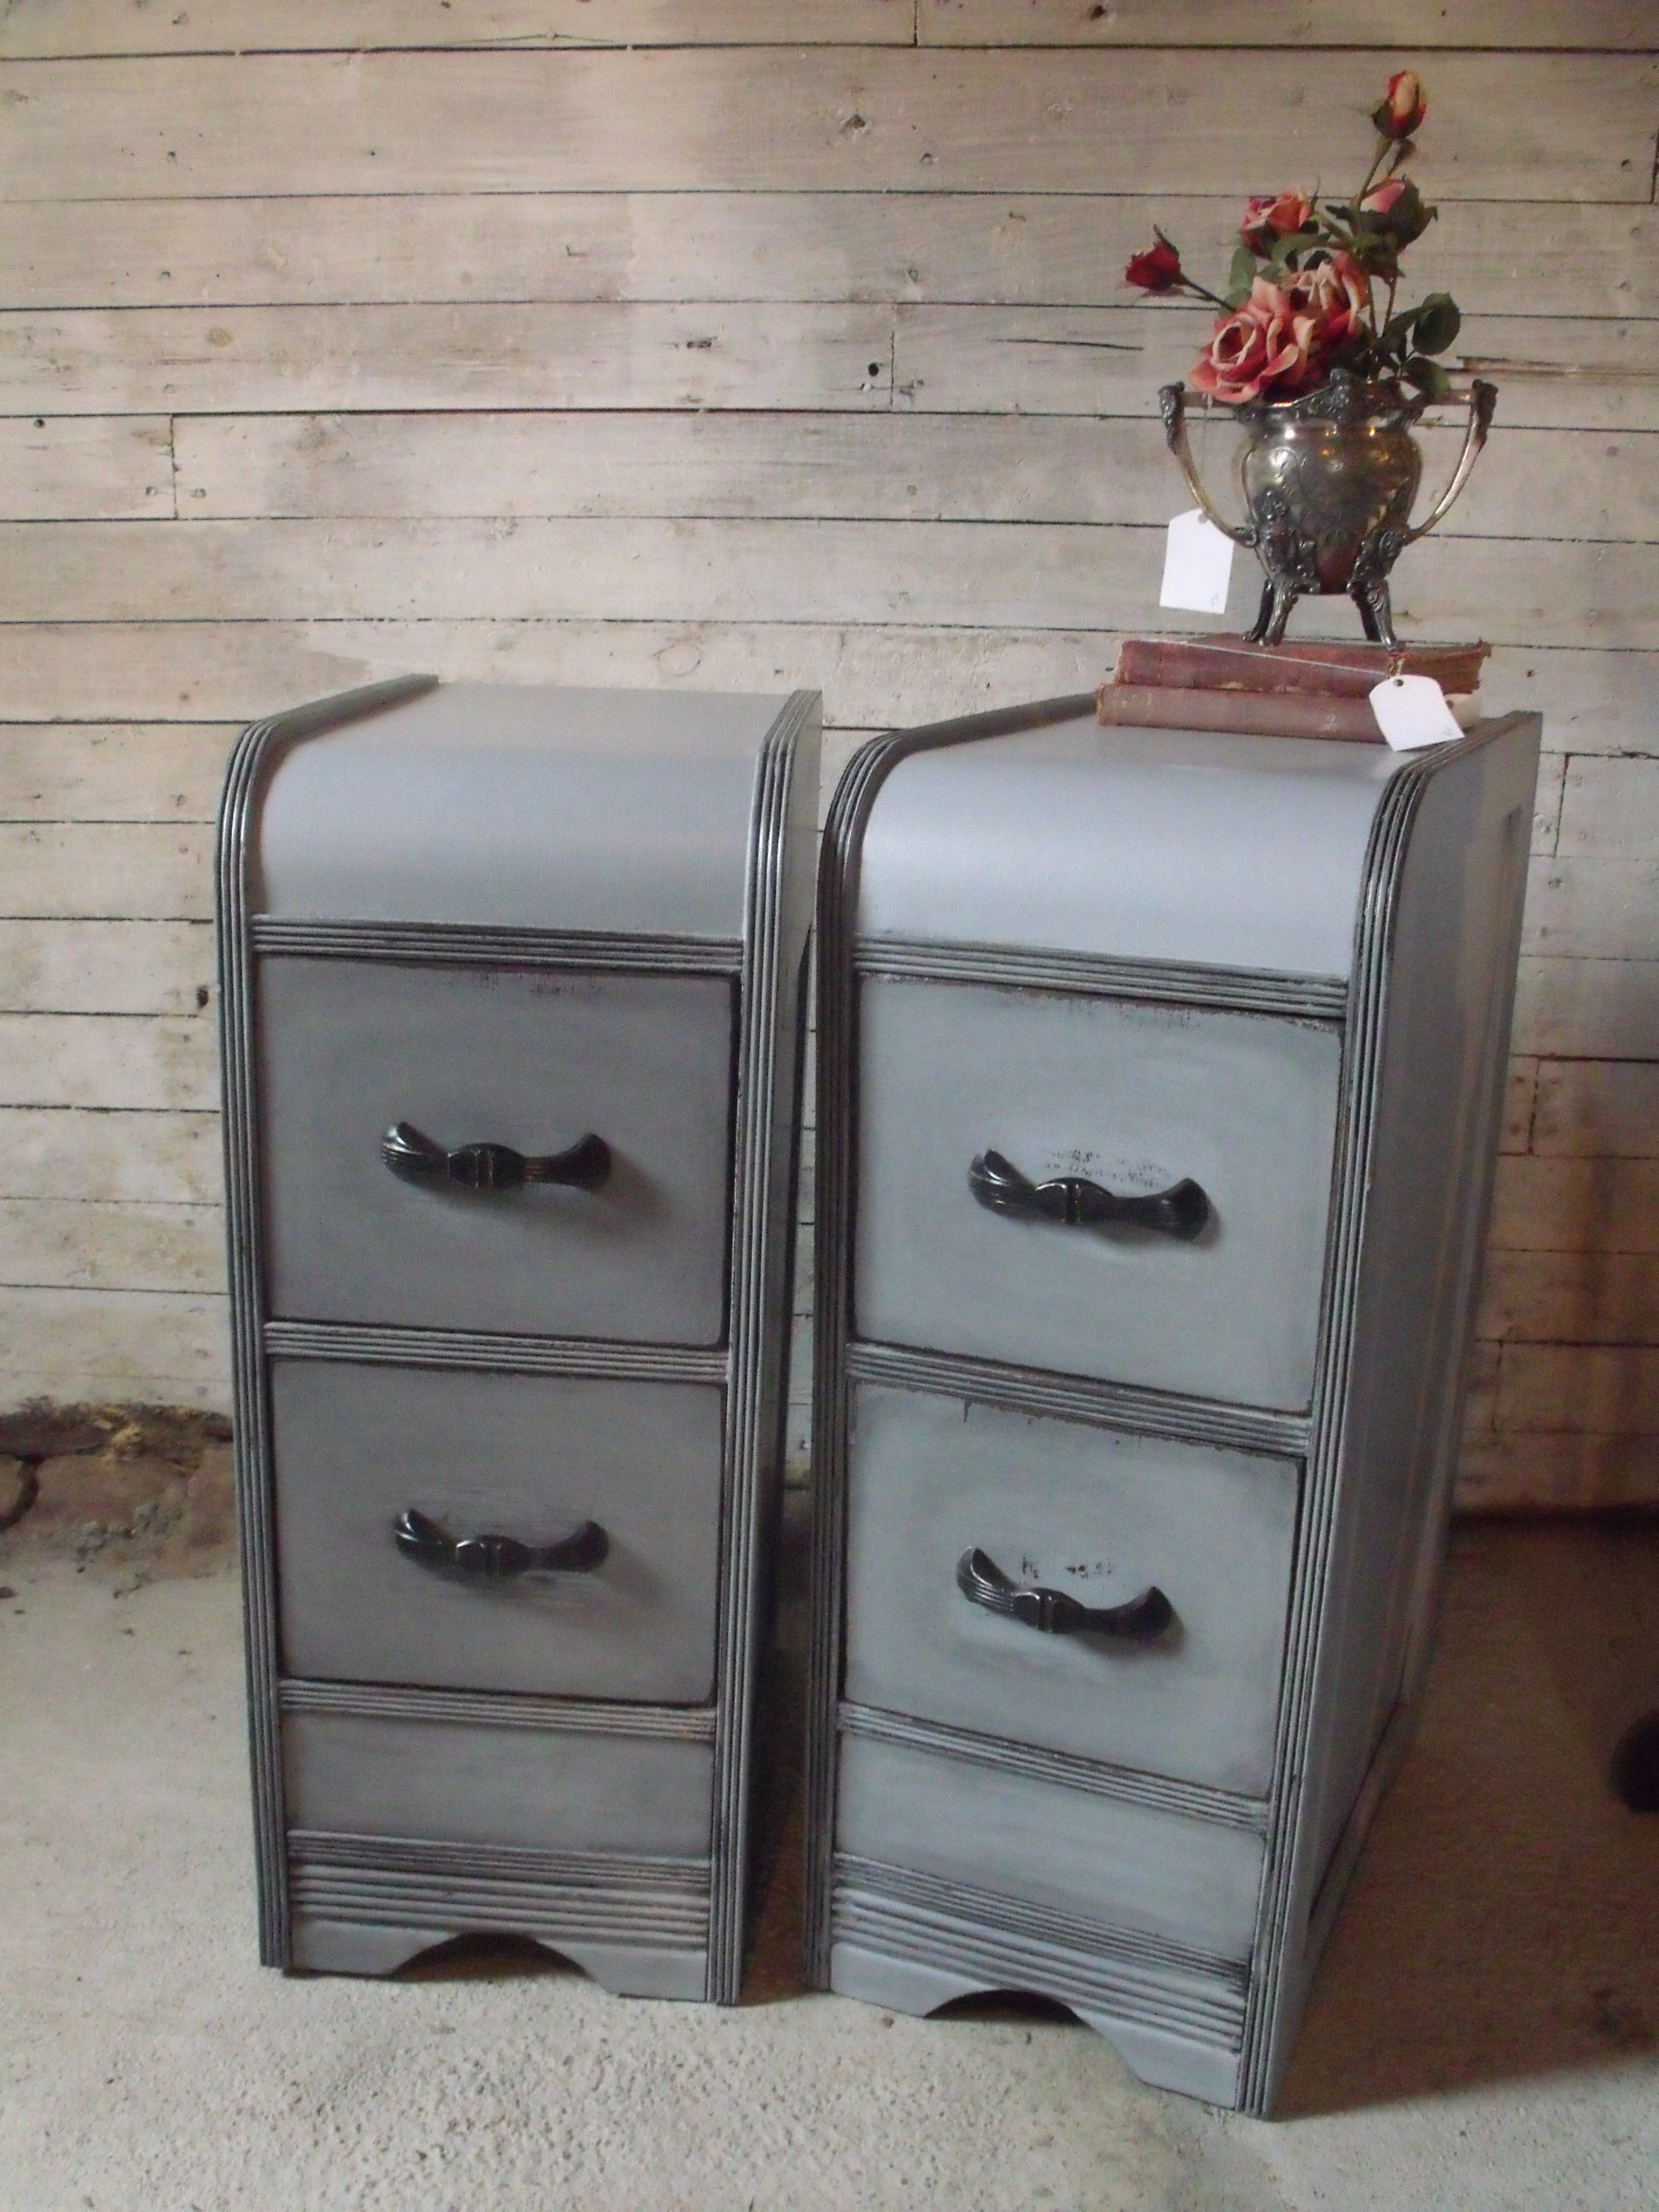 A Vintage Waterfall Vanity Turned Into Matching Night Stands Vintage Nightstand Refurbished Furniture Diy Antique Bedroom Furniture